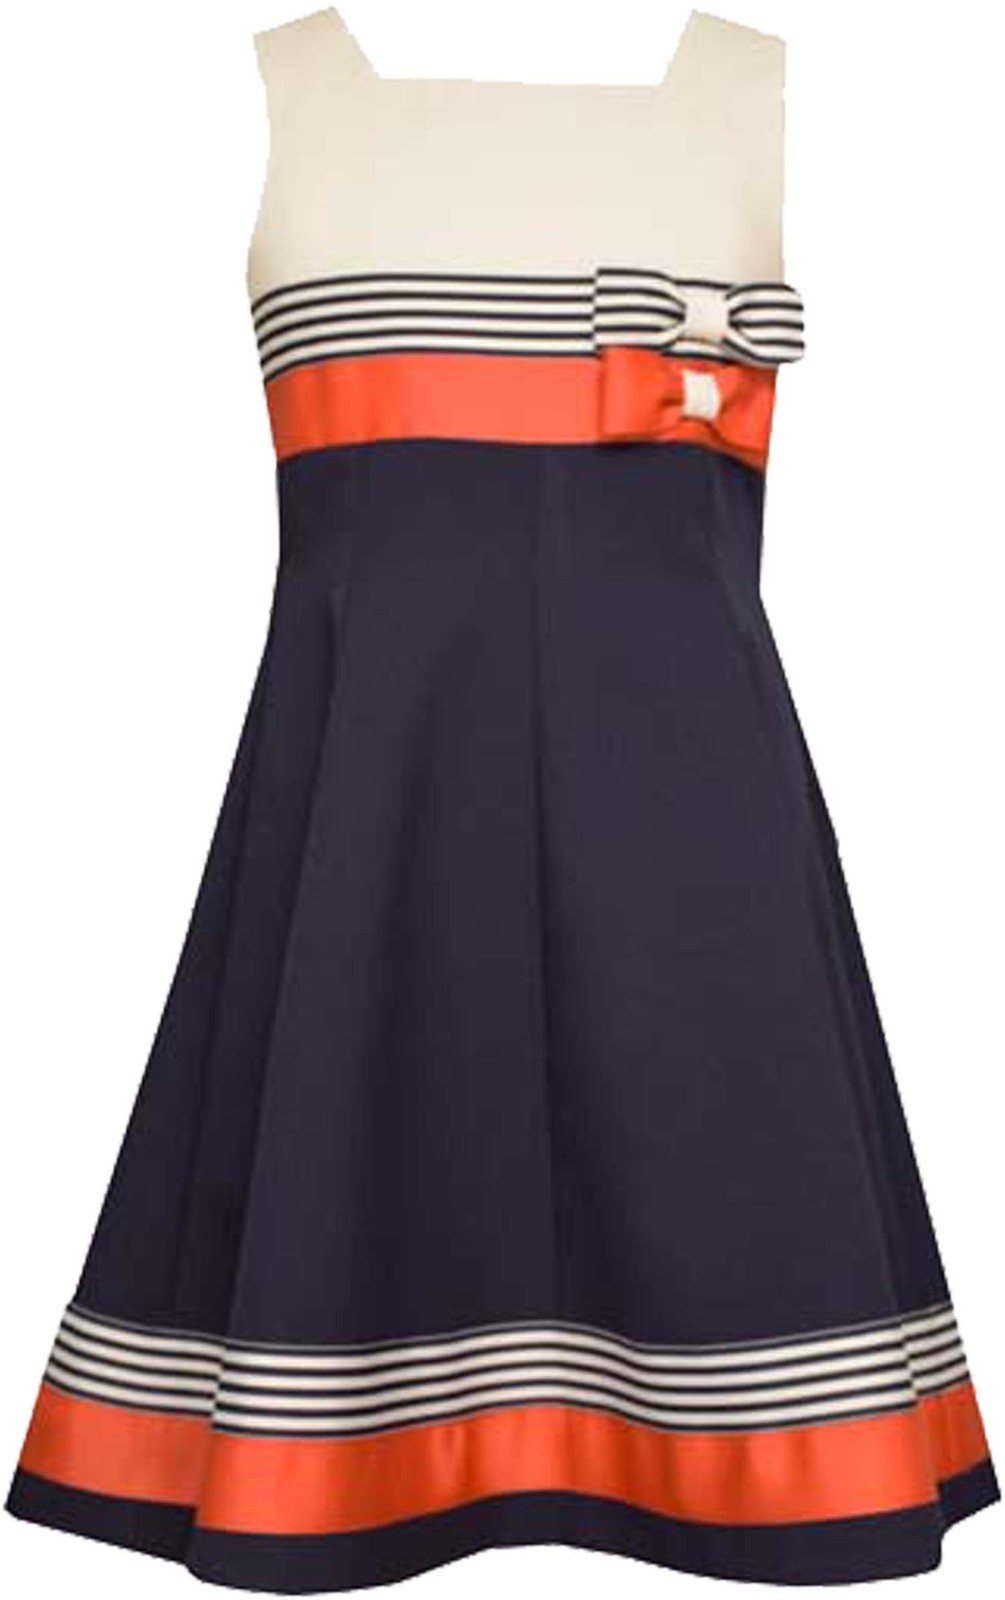 Bonnie Jean Big Girl Tween 7-16 Red White Blue Double Bow Fit Flare Dress